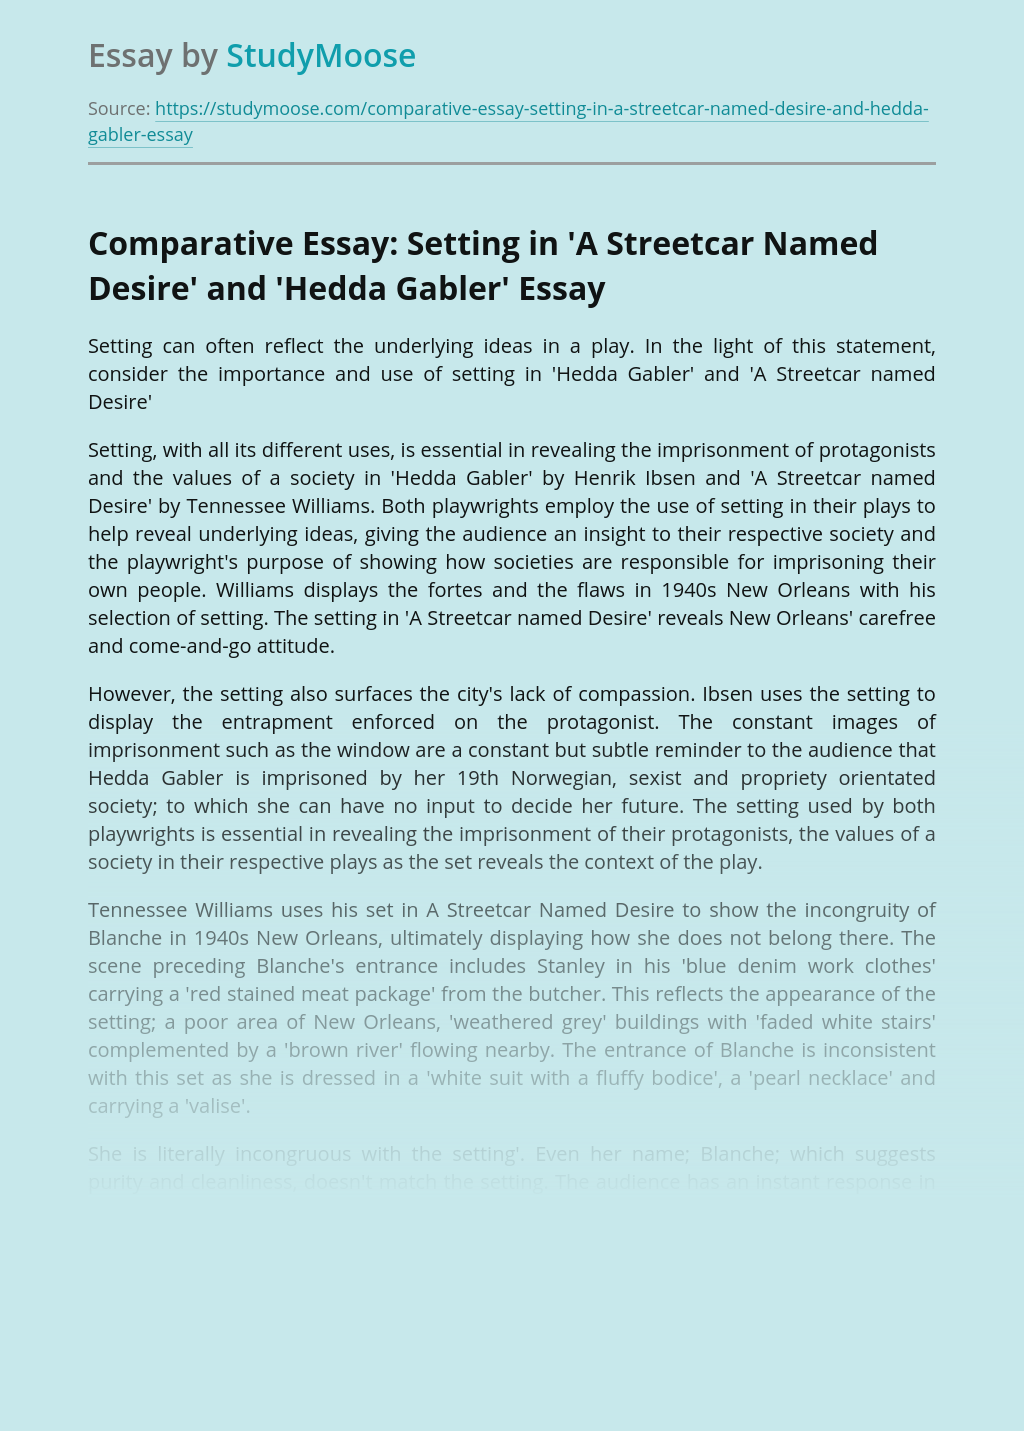 Comparative Essay: Setting in 'A Streetcar Named Desire' and 'Hedda Gabler'